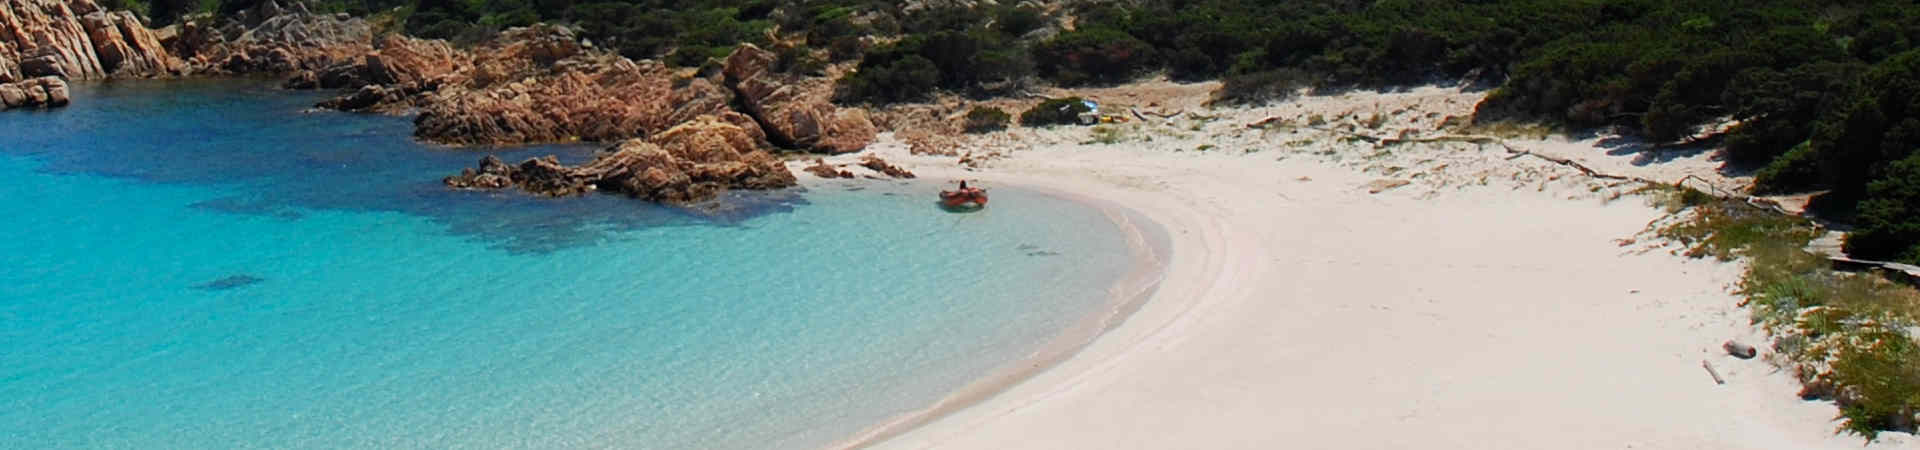 Resource image of the destination port Santa Teresa Gallura for the ferry route Bonifacio - Santa Teresa Gallura